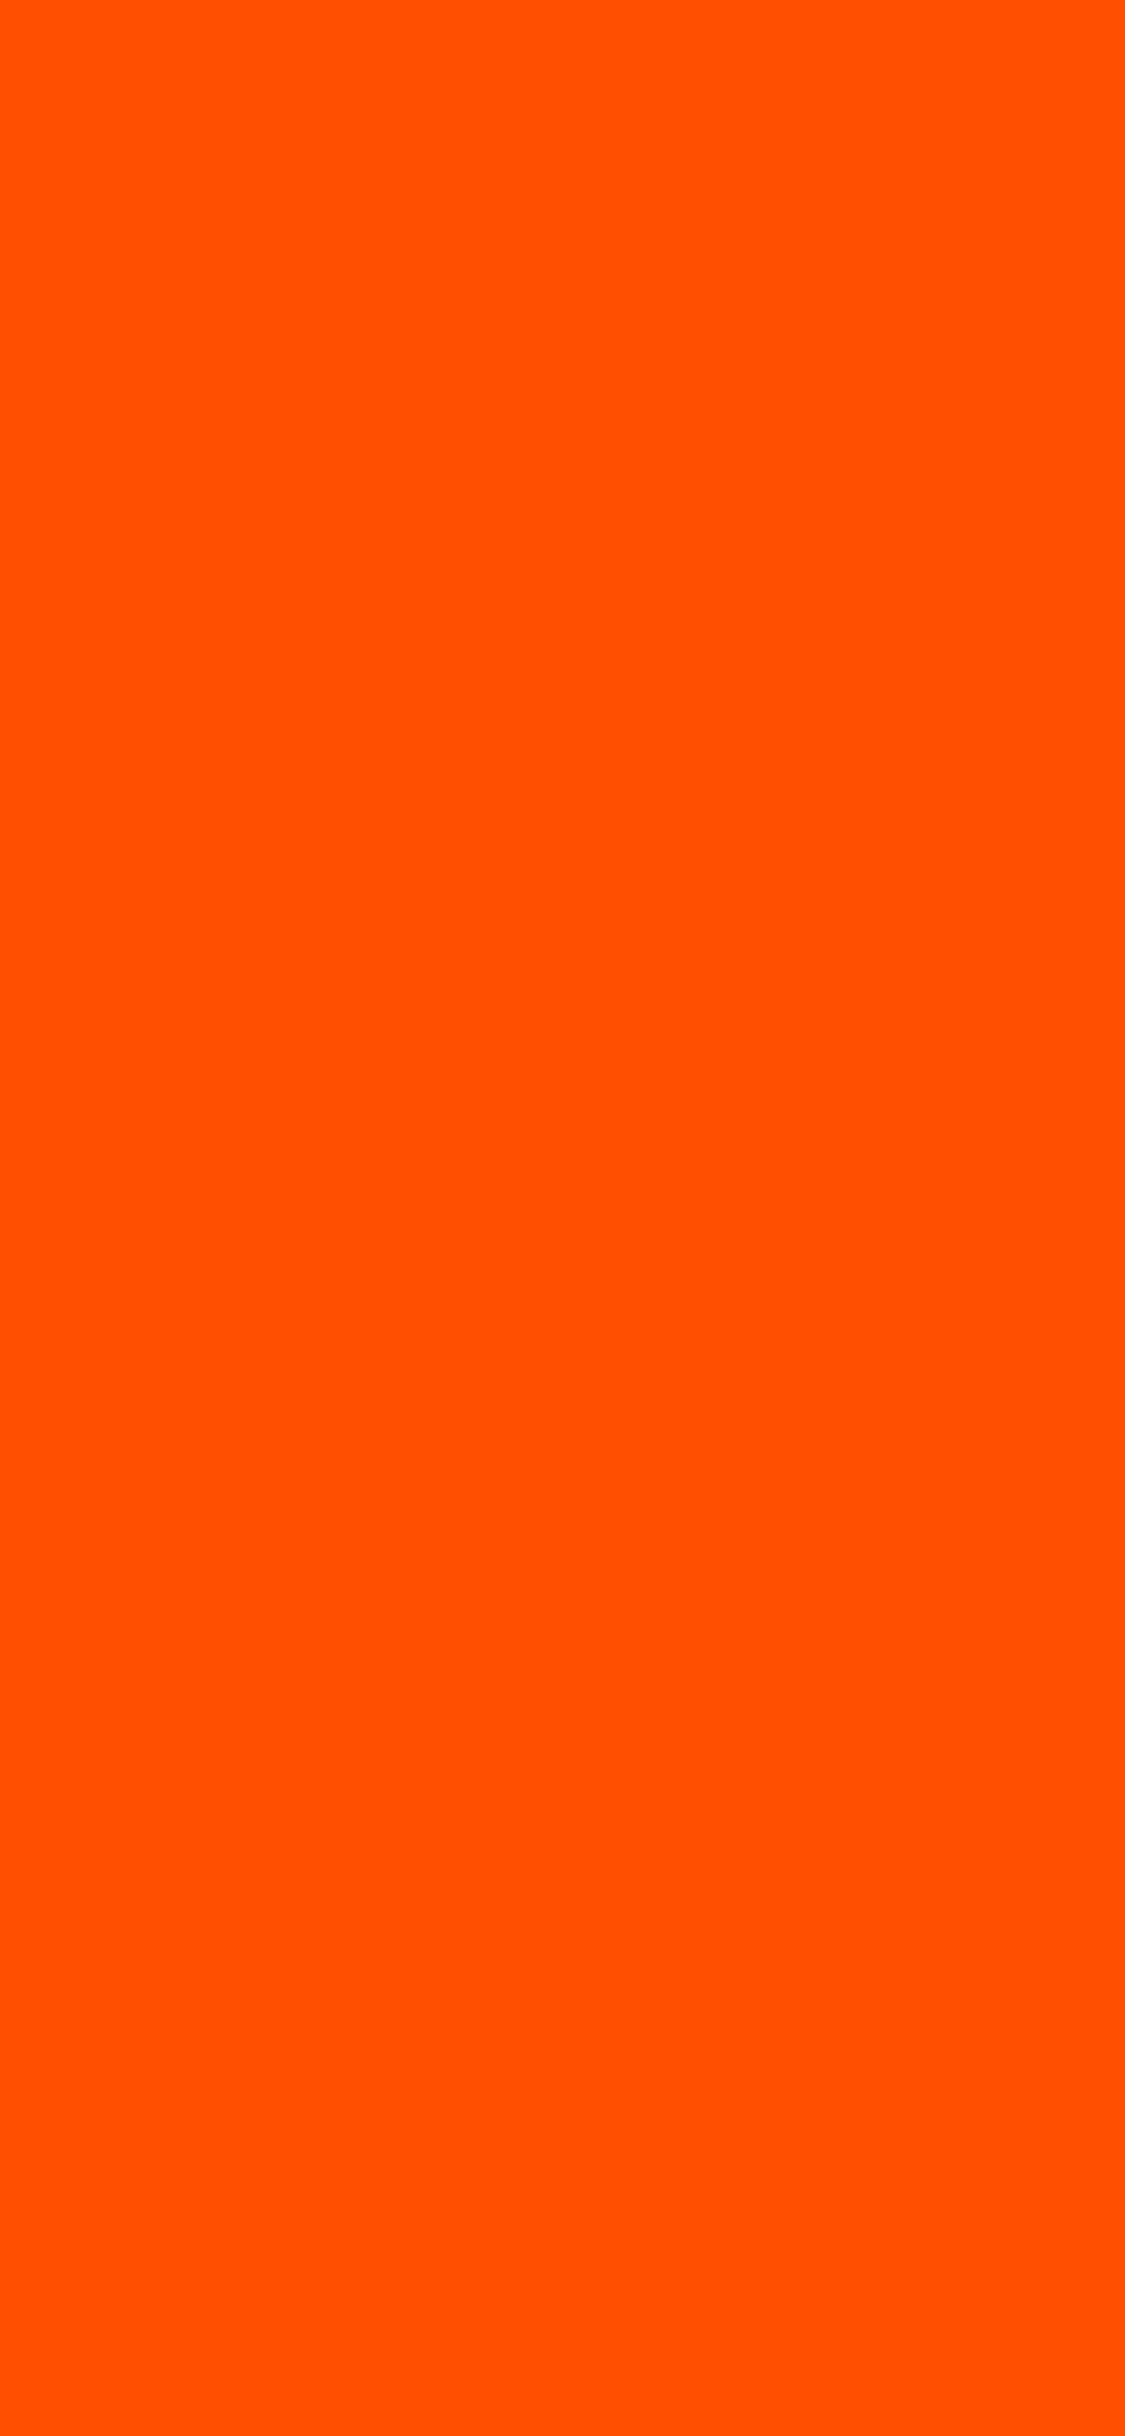 1125x2436 International Orange Aerospace Solid Color Background